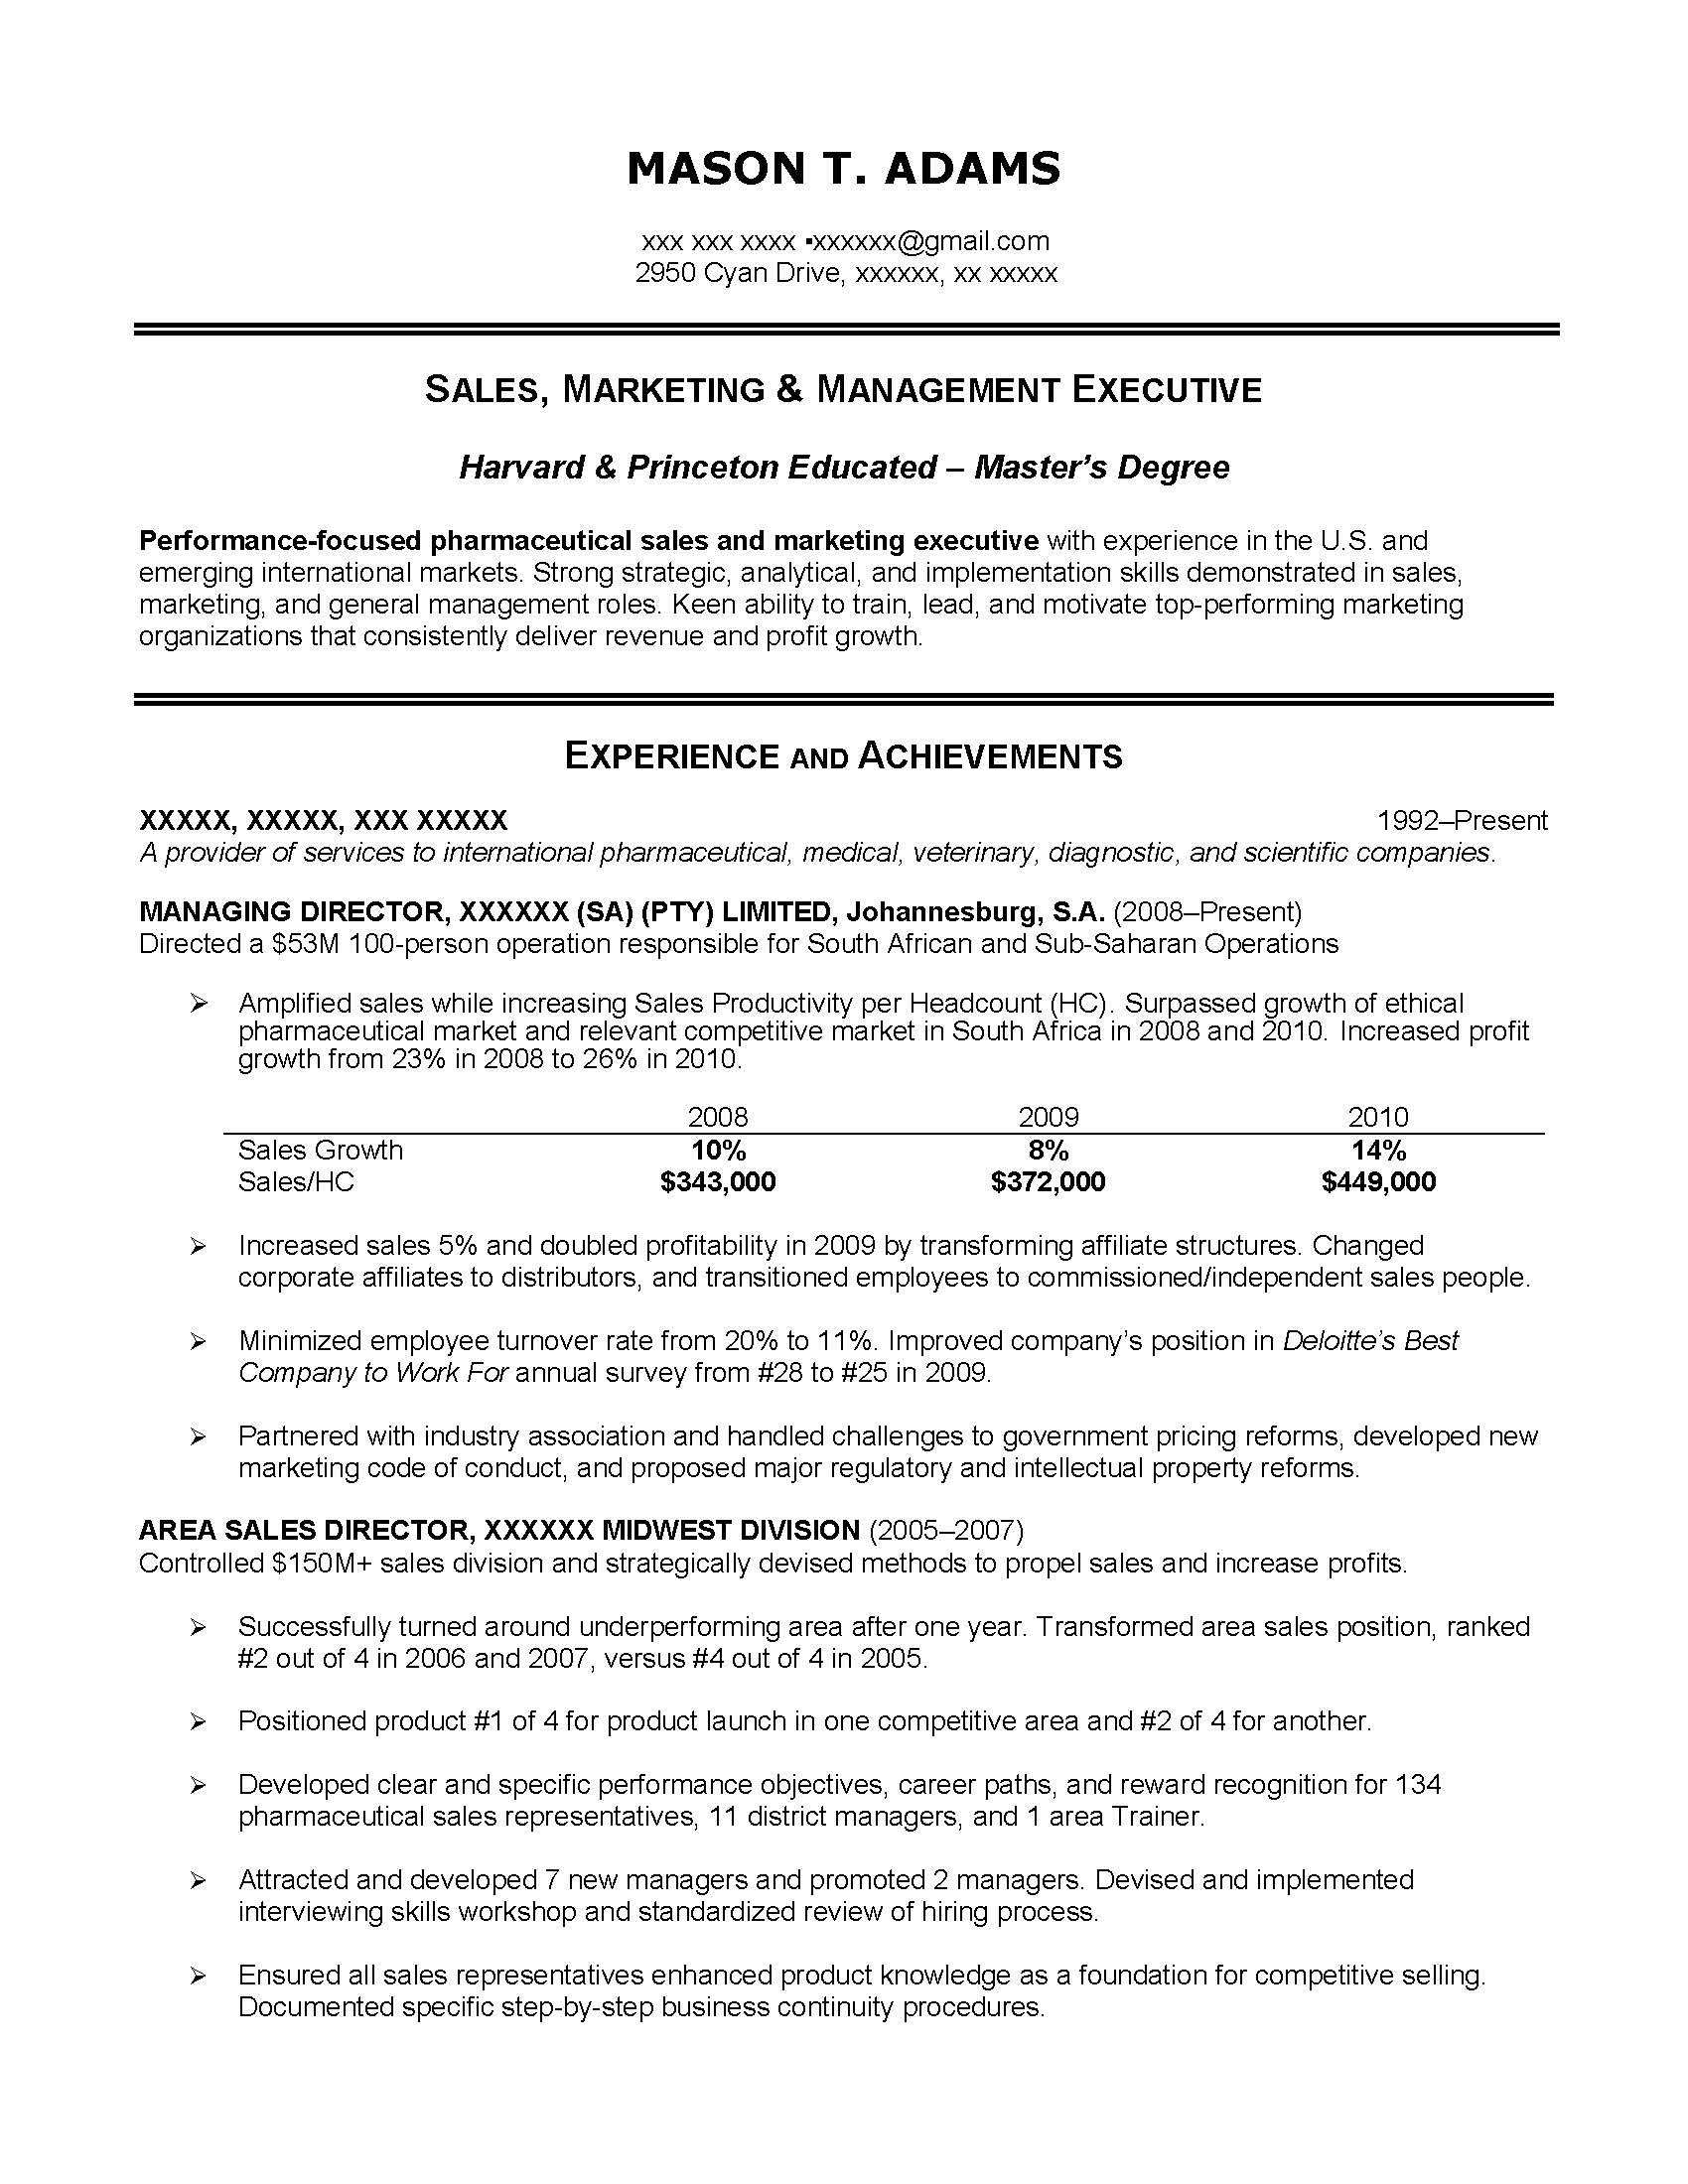 Executive Sales Resume Sample, Provided By Elite Resume Writing Services  Communication Resume Sample